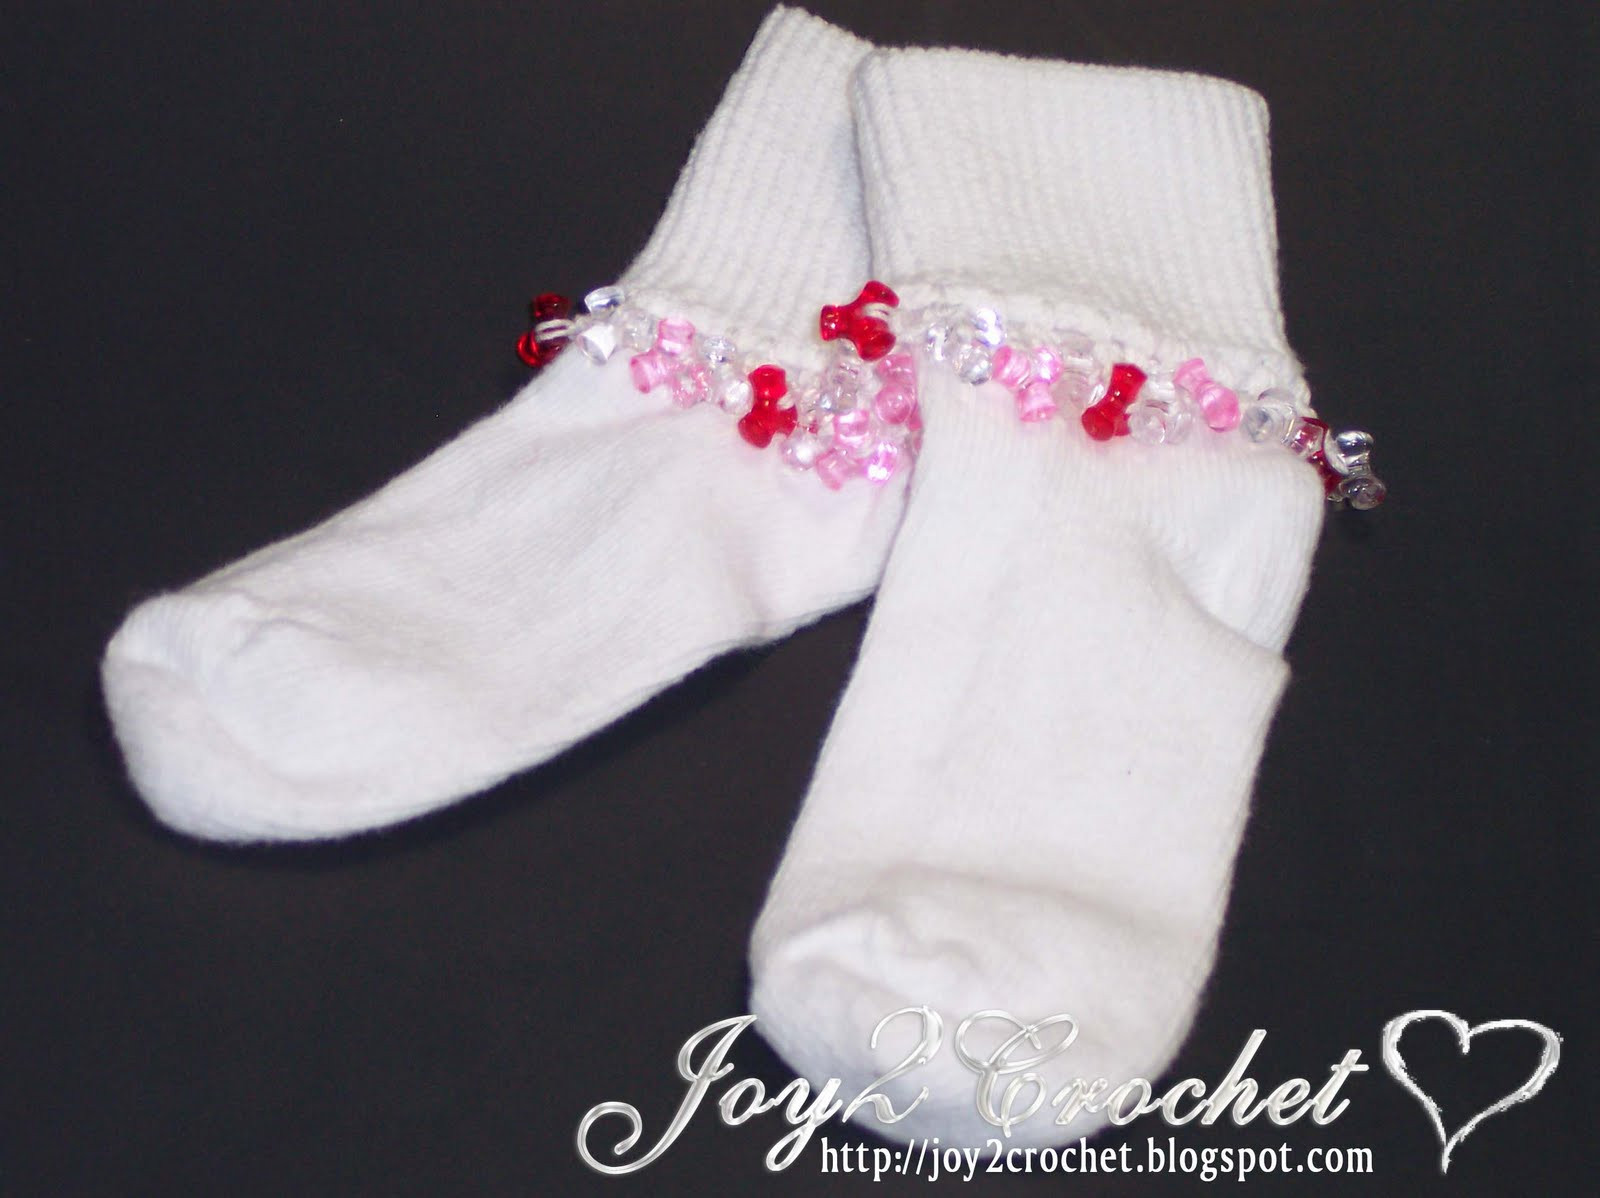 Lovely Joy 2 Crochet Crocheted Tri Bead Baby socks Crochet Baby socks Of New Berry Baby Booties Knitting Pattern Easy Crochet Baby socks